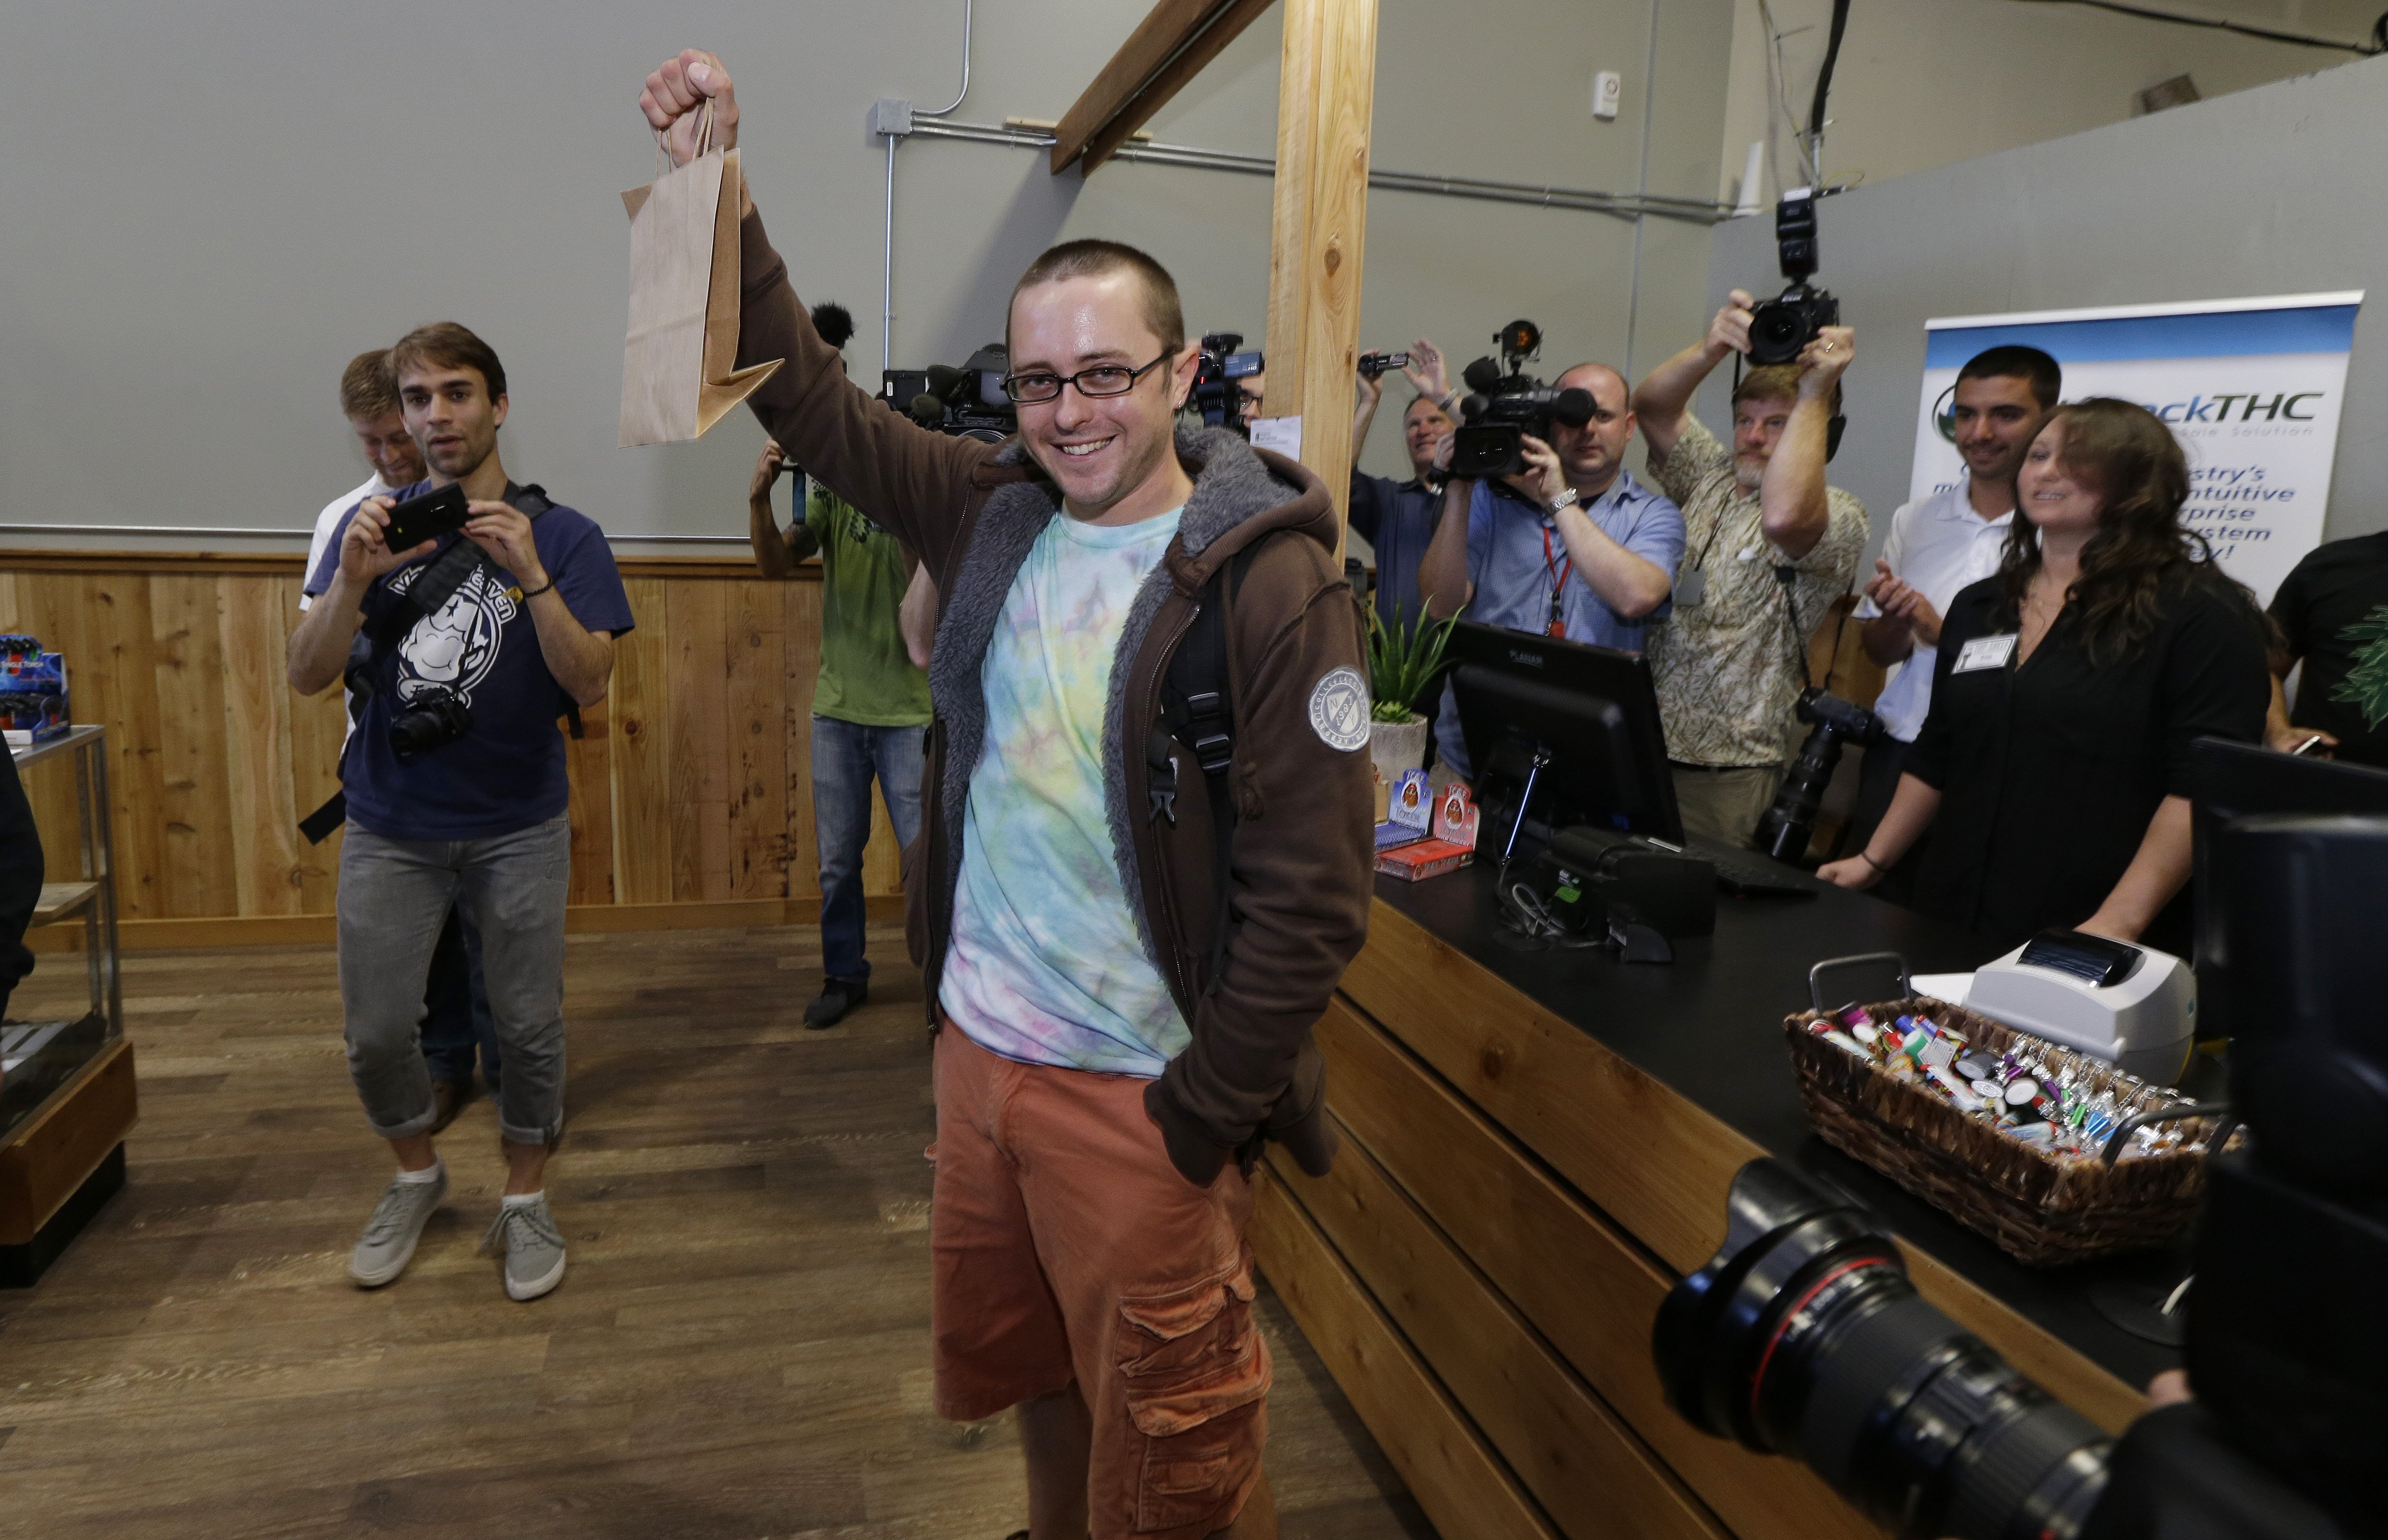 Cale Holdsworth, of Abeline, Kan., who waited in line since 4:00 am, holds up his purchase after being the first in line to buy legal recreational marijuana at Top Shelf Cannabis in Bellingham, Wash. on July 8, 2014.